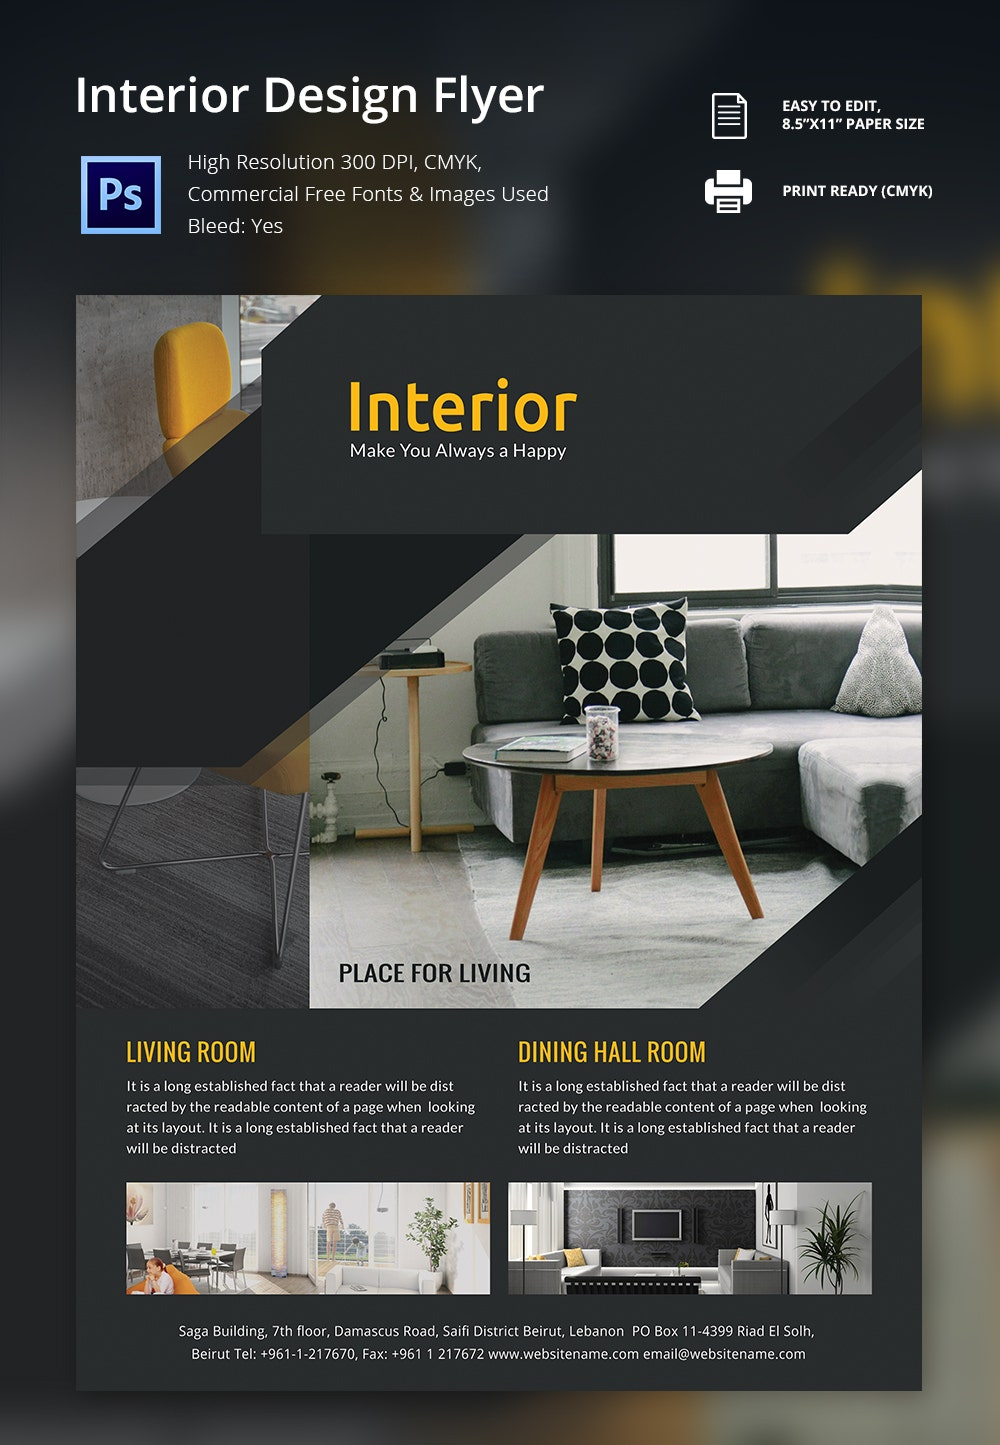 Interior design flyer template 25 free psd ai vector for Interior design layout templates